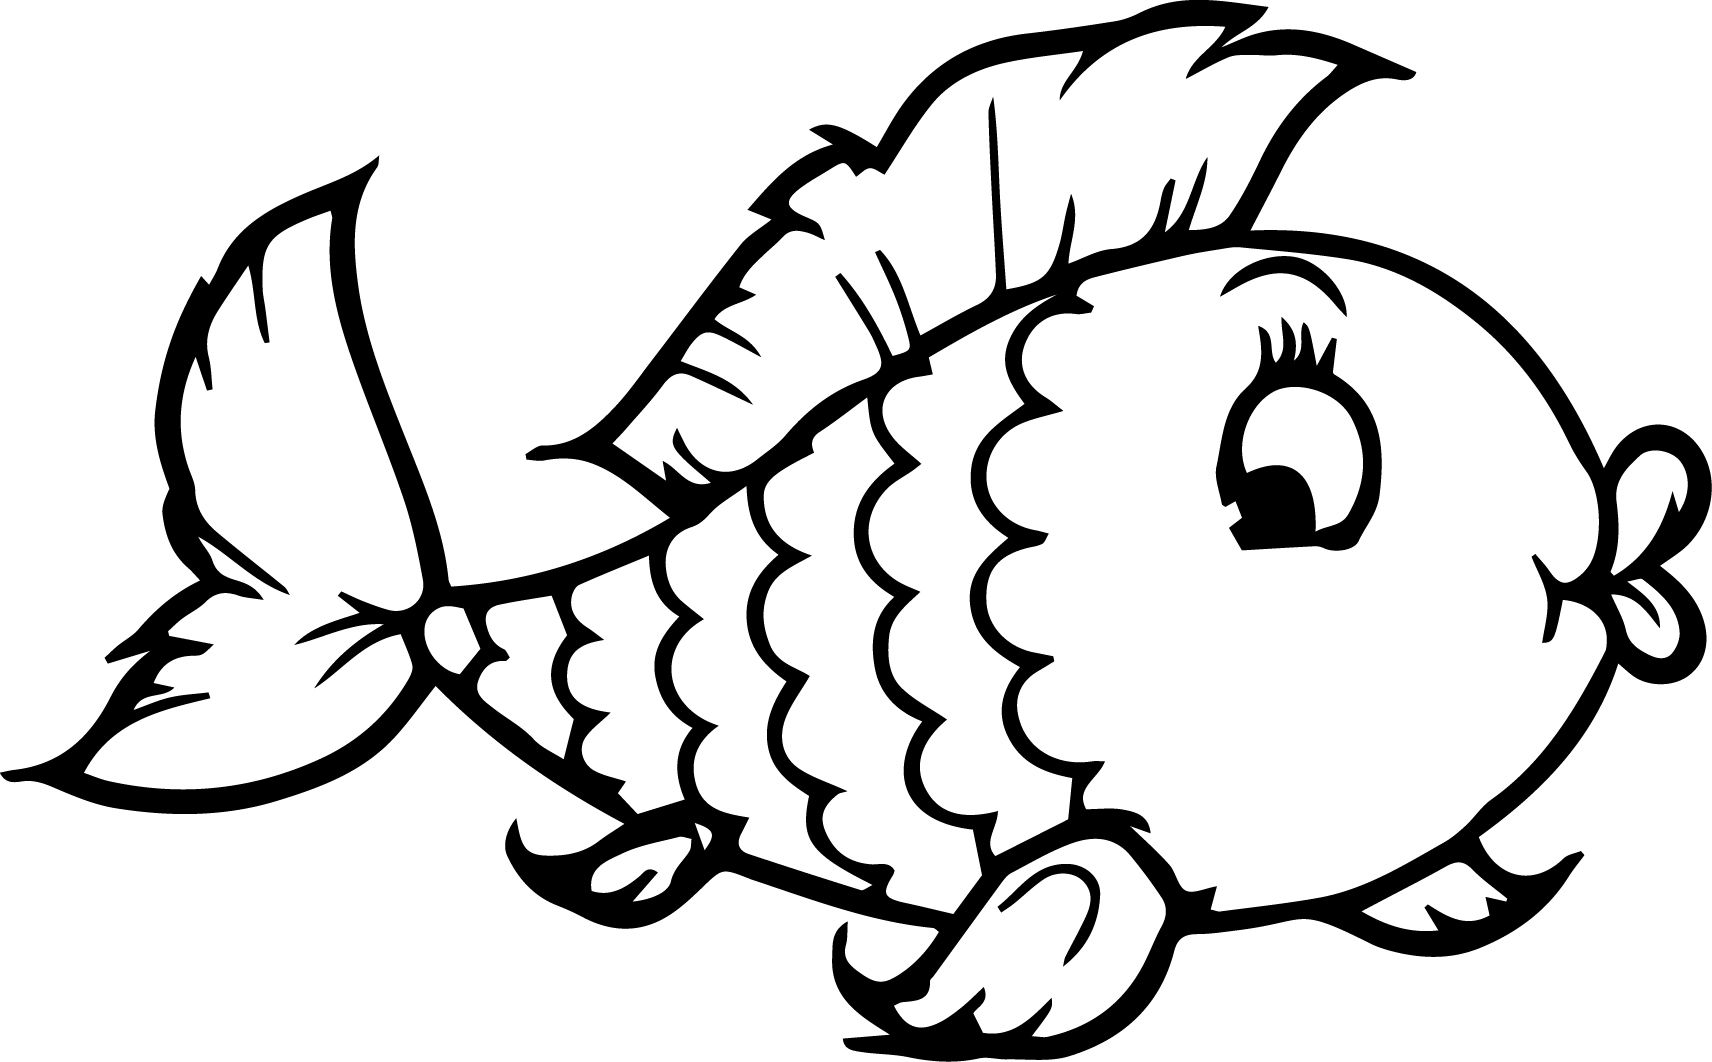 Pin By Wecoloringpage Coloring Pages On Coloring Pages Fish Coloring Page Cartoon Coloring Pages Owl Coloring Pages